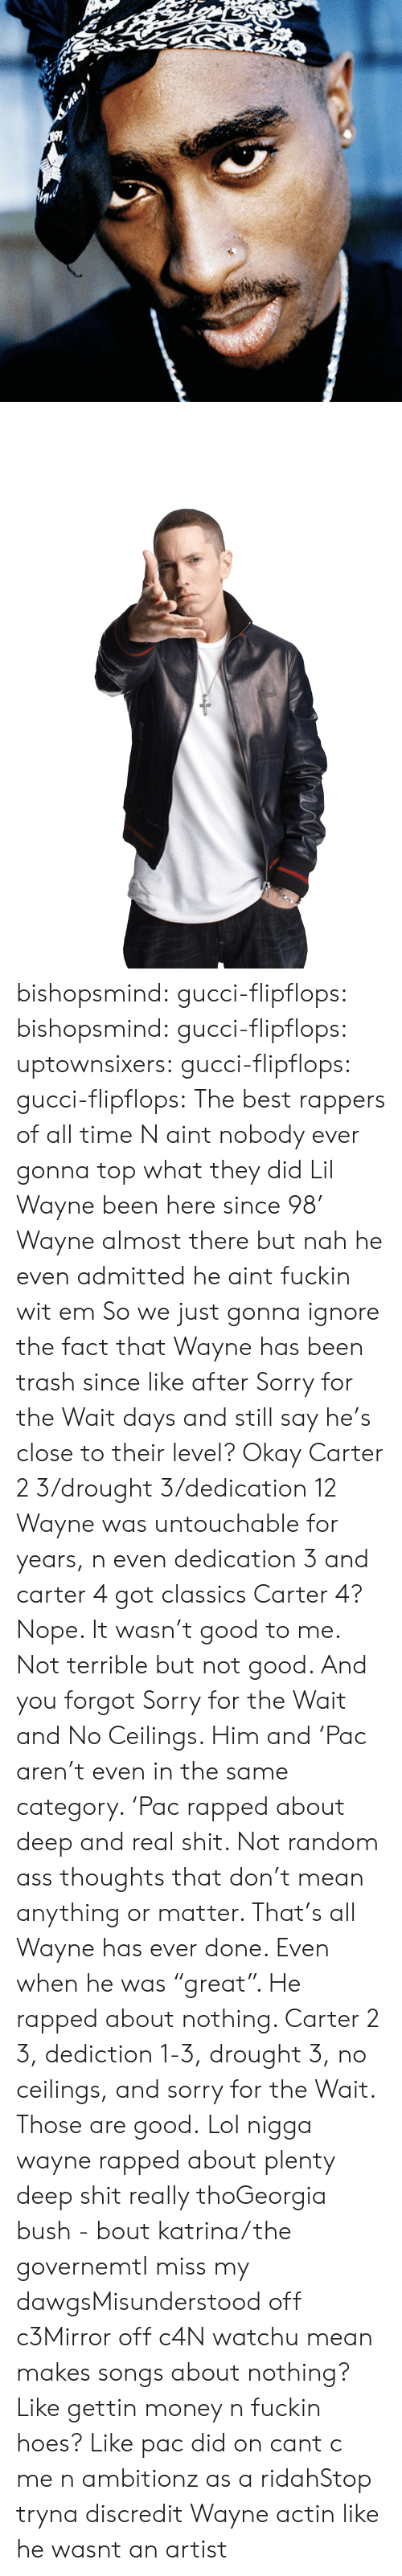 "Ass, Gucci, and Hoes: bishopsmind:  gucci-flipflops: bishopsmind:   gucci-flipflops:   uptownsixers:   gucci-flipflops:   gucci-flipflops:  The best rappers of all time  N aint nobody ever gonna top what they did   Lil Wayne been here since 98'   Wayne almost there but nah he even admitted he aint fuckin wit em   So we just gonna ignore the fact that Wayne has been trash since like after Sorry for the Wait days and still say he's close to their level? Okay   Carter 2  3/drought 3/dedication 12 Wayne was untouchable for years, n even dedication 3 and carter 4 got classics  Carter 4? Nope. It wasn't good to me. Not terrible but not good. And you forgot Sorry for the Wait and No Ceilings. Him and 'Pac aren't even in the same category. 'Pac rapped about deep and real shit. Not random ass thoughts that don't mean anything or matter. That's all Wayne has ever done. Even when he was ""great"". He rapped about nothing. Carter 2  3, dediction 1-3, drought 3, no ceilings, and sorry for the Wait. Those are good.  Lol nigga wayne rapped about plenty deep shit really thoGeorgia bush - bout katrina/the governemtI miss my dawgsMisunderstood off c3Mirror off c4N watchu mean makes songs about nothing? Like gettin money n fuckin hoes? Like pac did on cant c me n ambitionz as a ridahStop tryna discredit Wayne actin like he wasnt an artist"